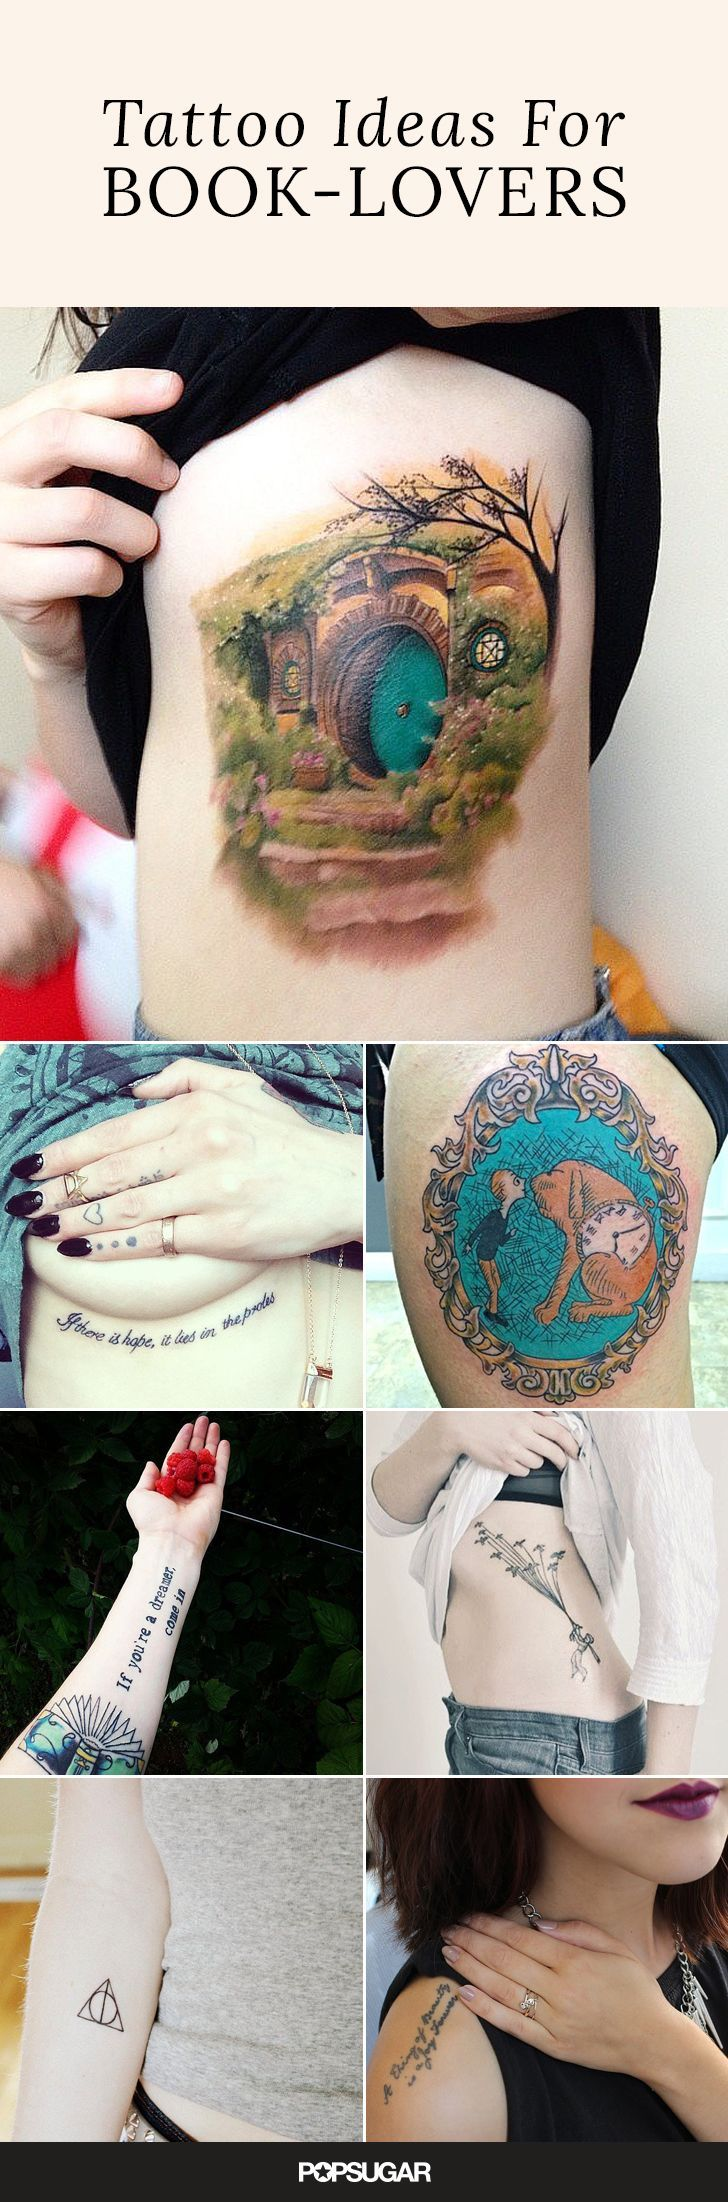 Tattoos based on books are a beautiful way of keeping our favorite literary memories, characters, and quotes alive even after we've turned the last page. We've rounded up some artistic interpretations of famous works. Read 'em and weep!